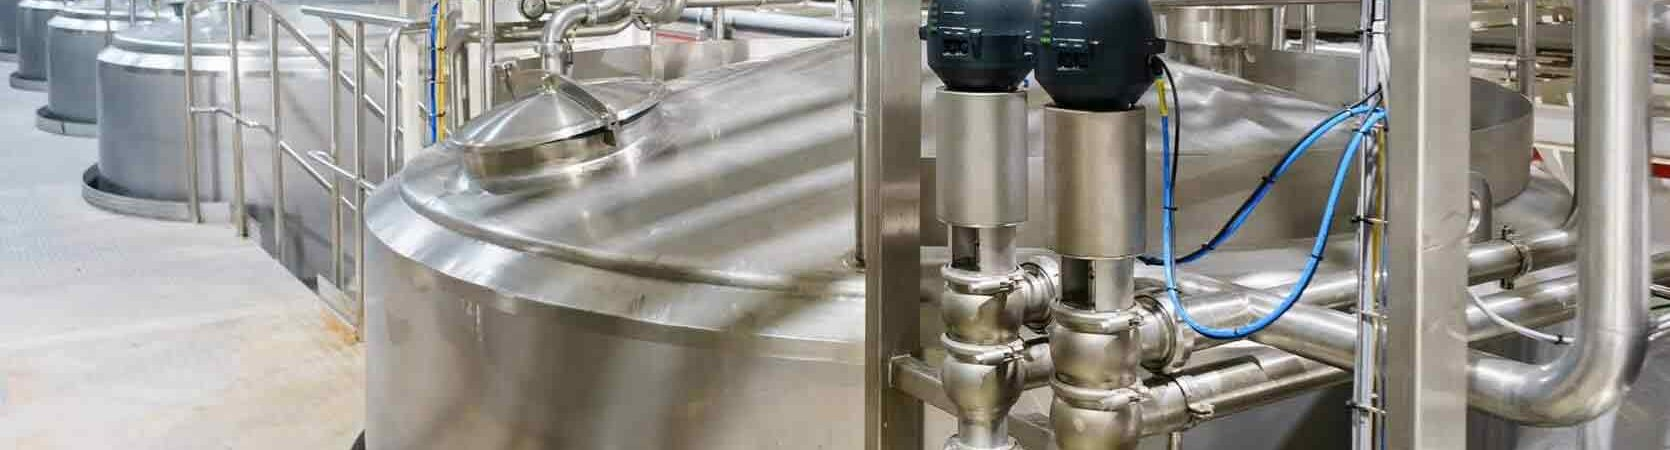 Enzyme Fermentation & Recover Plant Expansion for Food Manufacturing